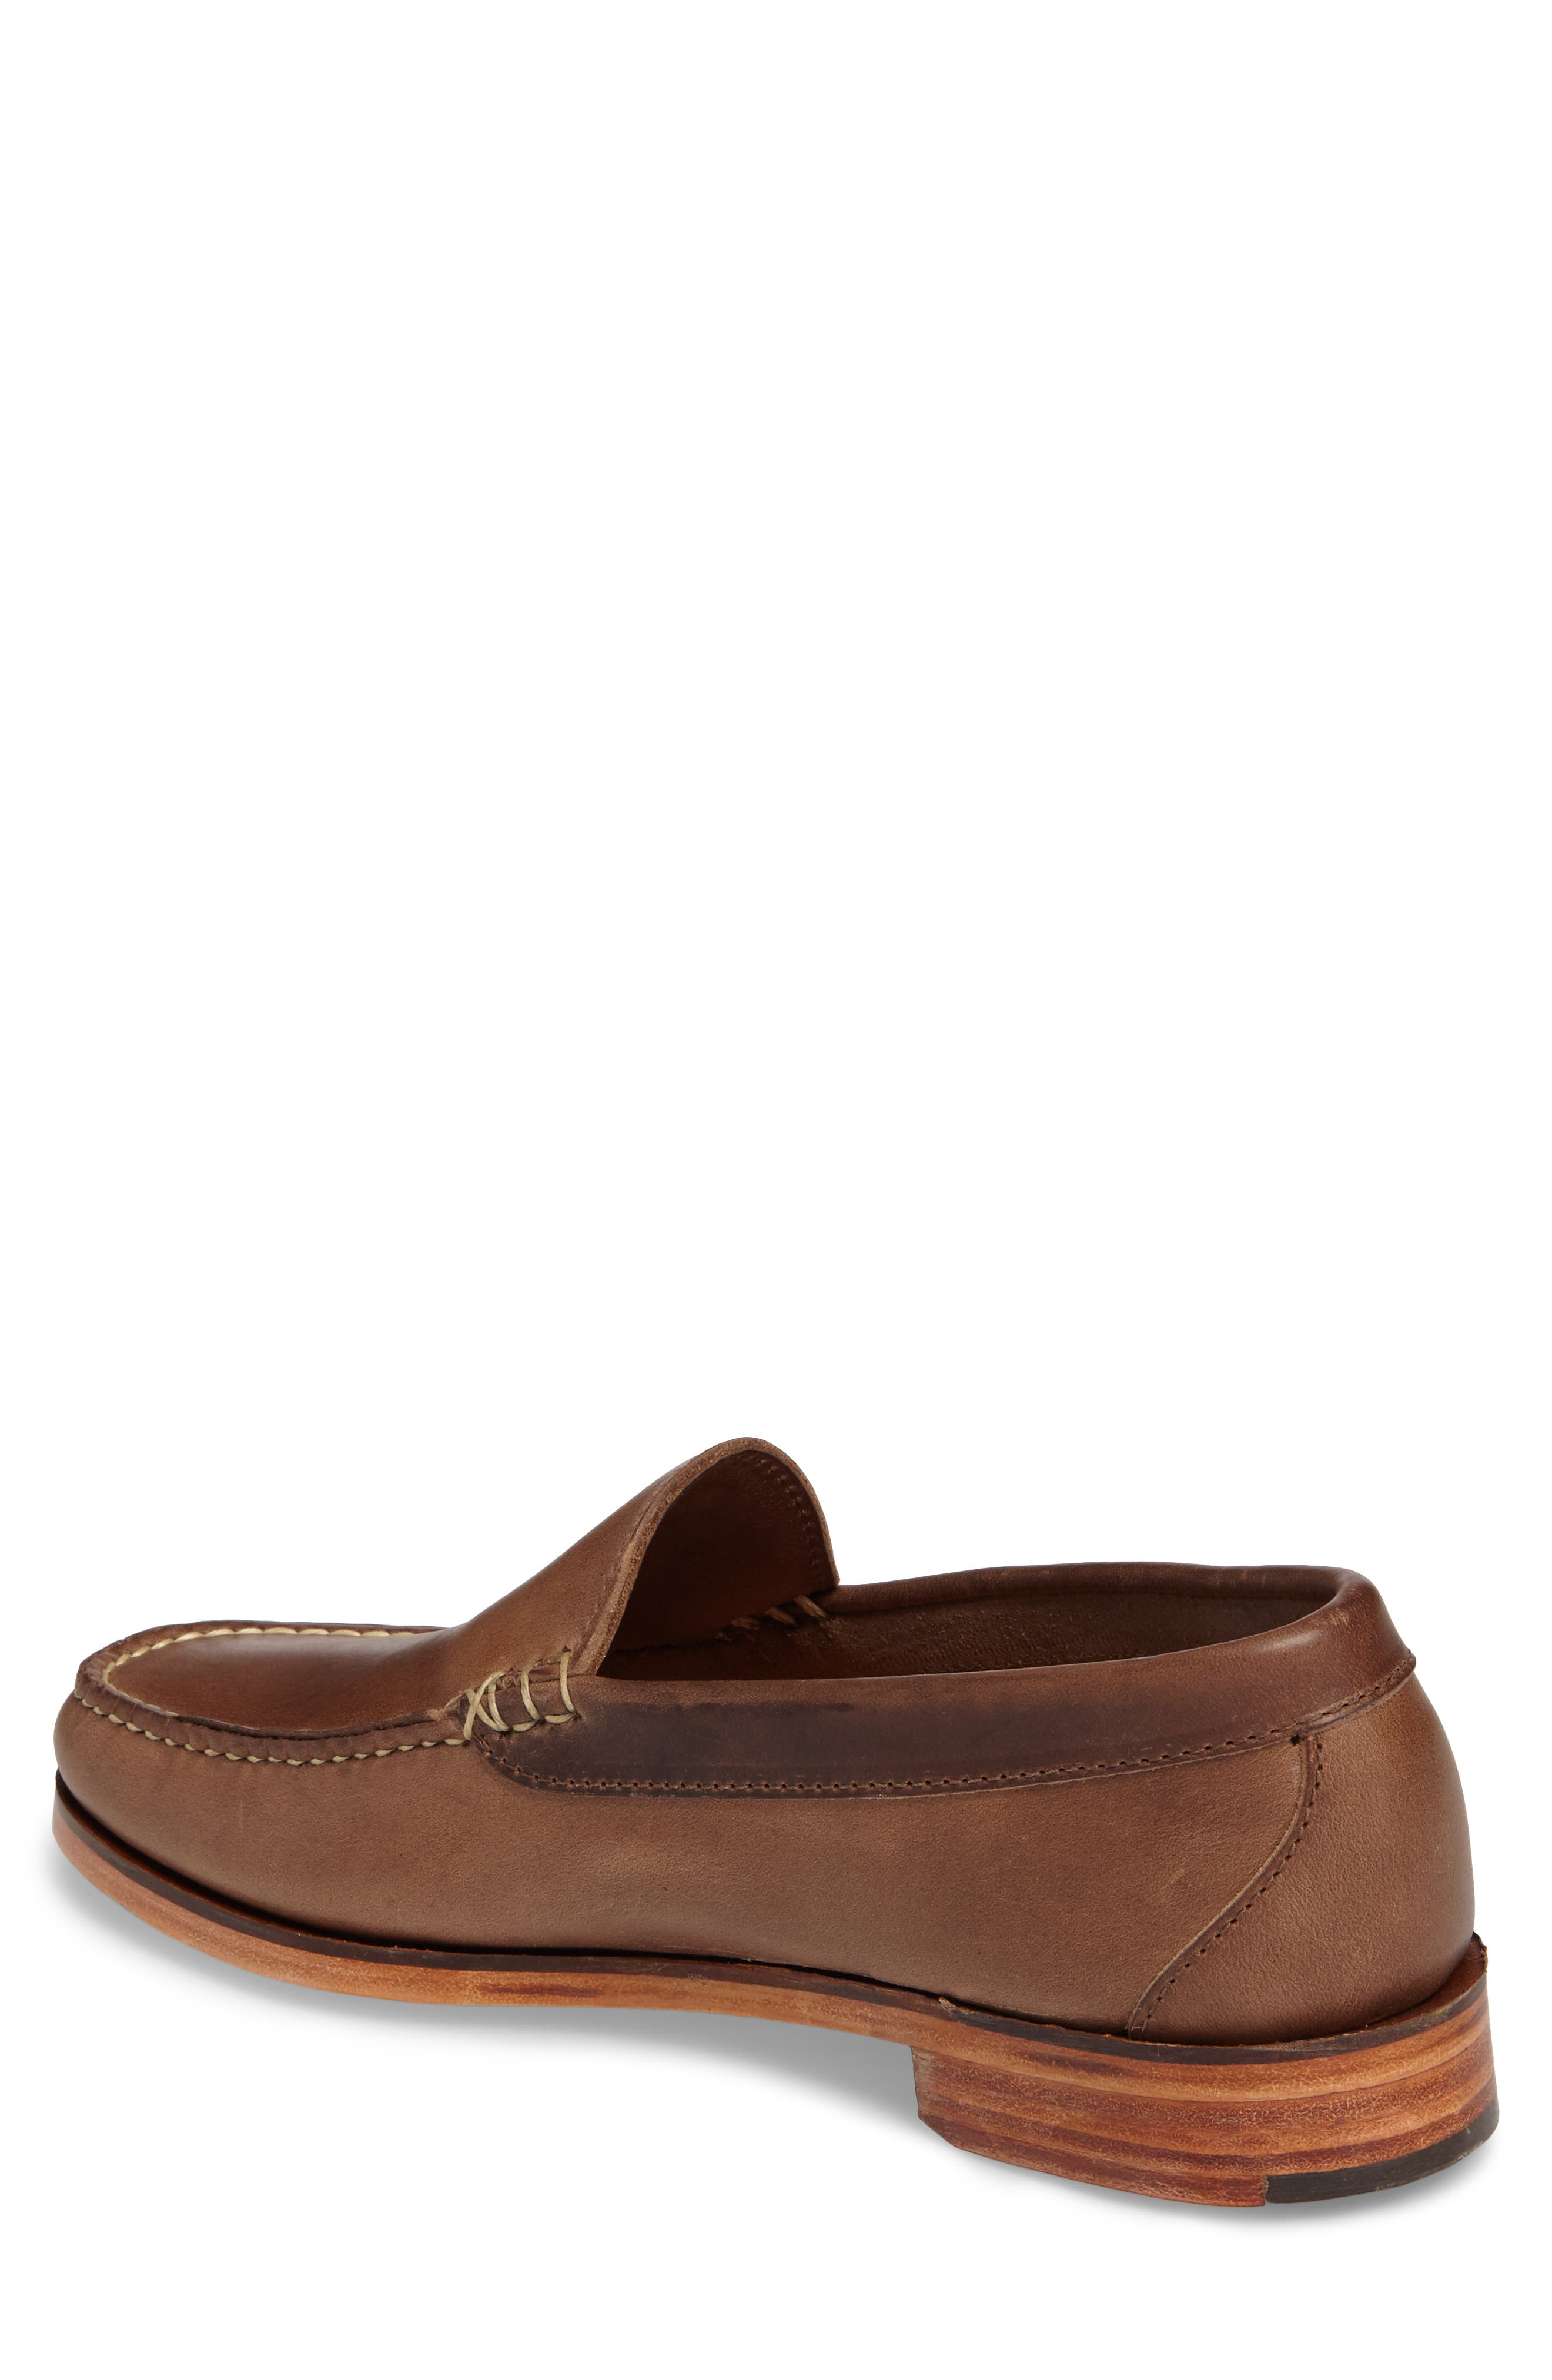 Natural Loafer,                             Alternate thumbnail 2, color,